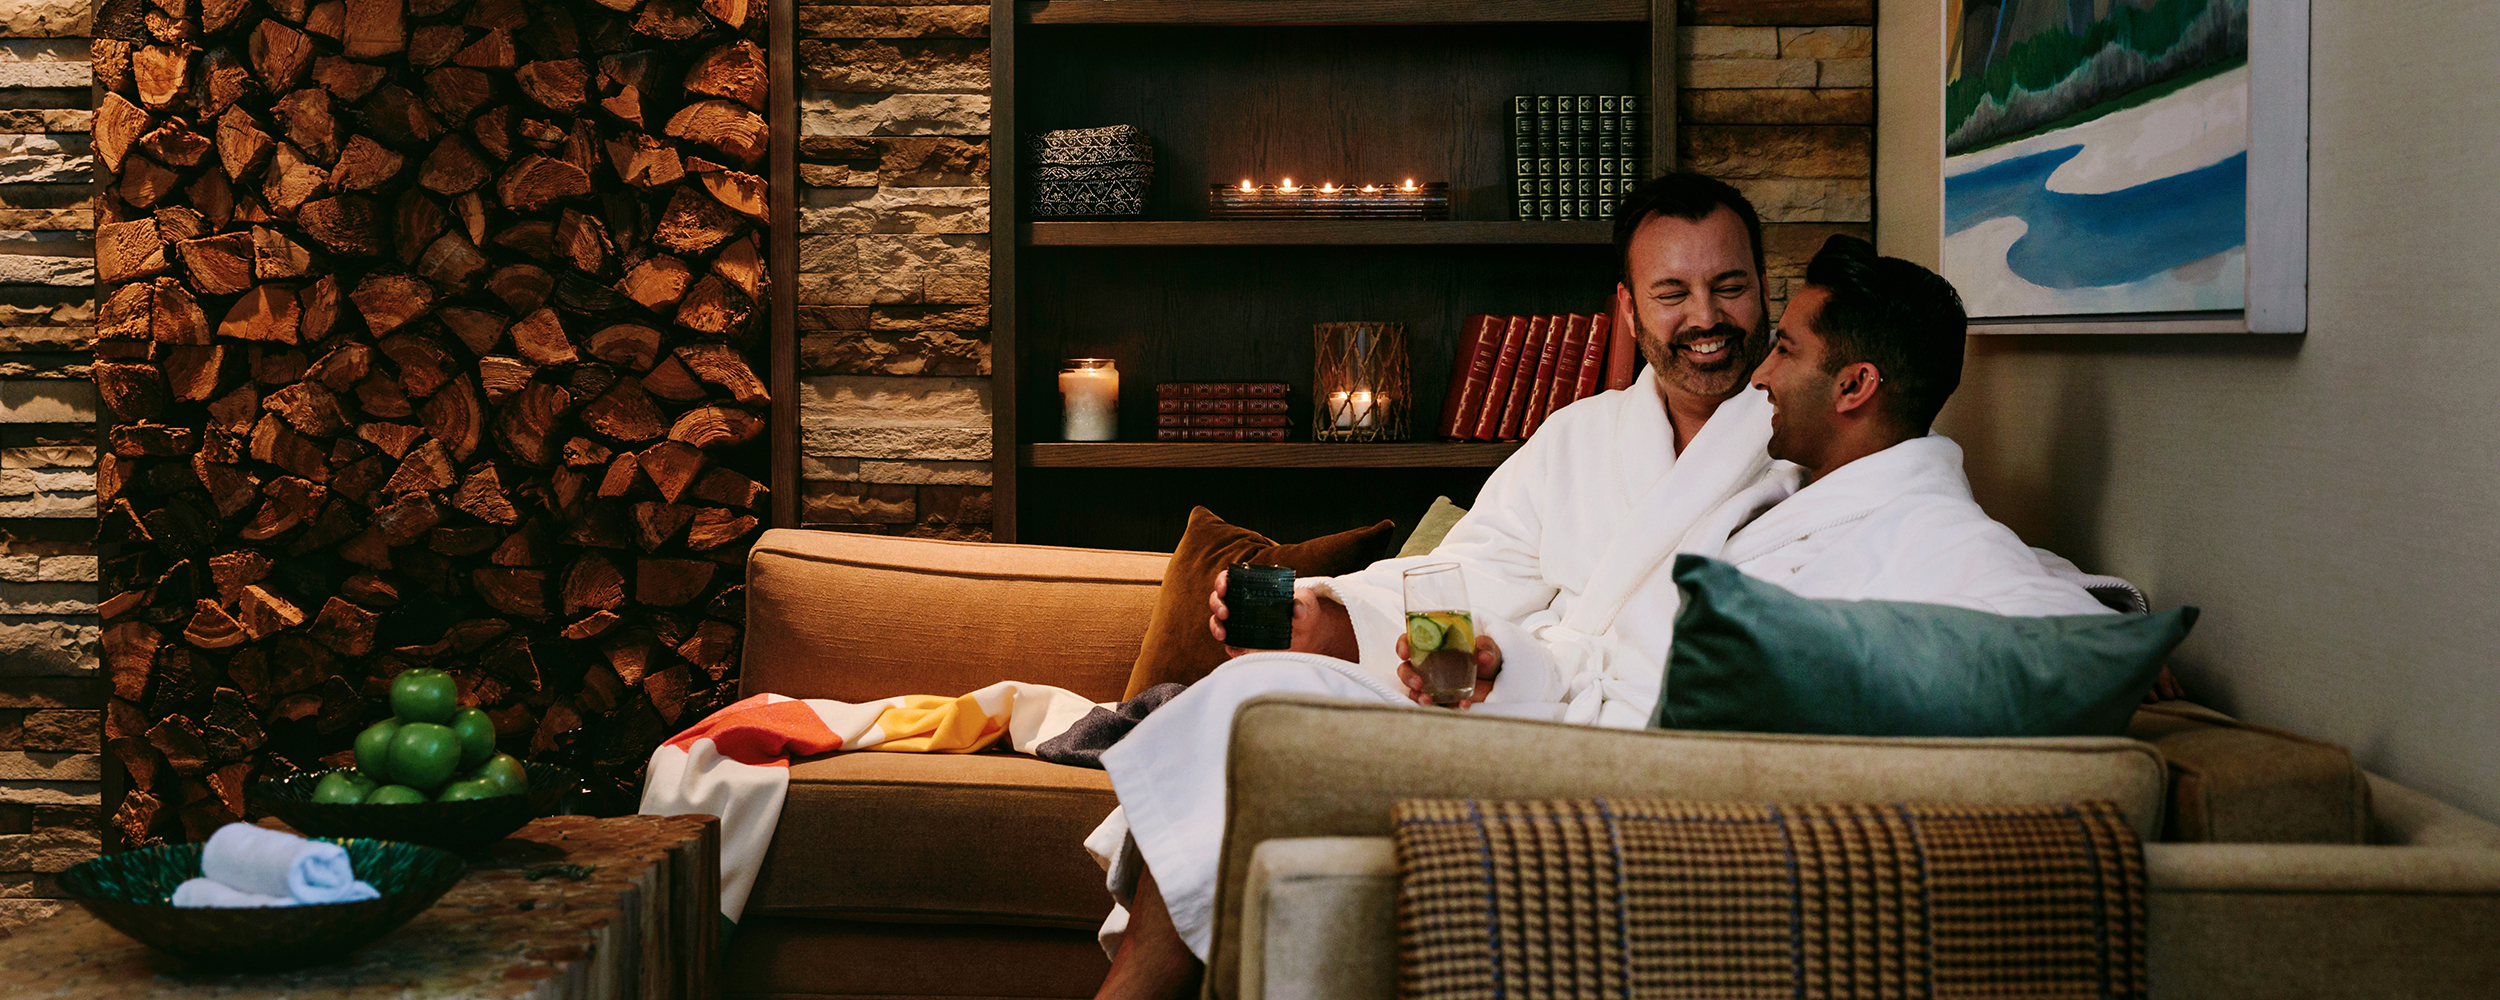 The Spa at Fairmont Jasper Park Lodge in Alberta - A couple sits in white robes in the Relaxation Lounge